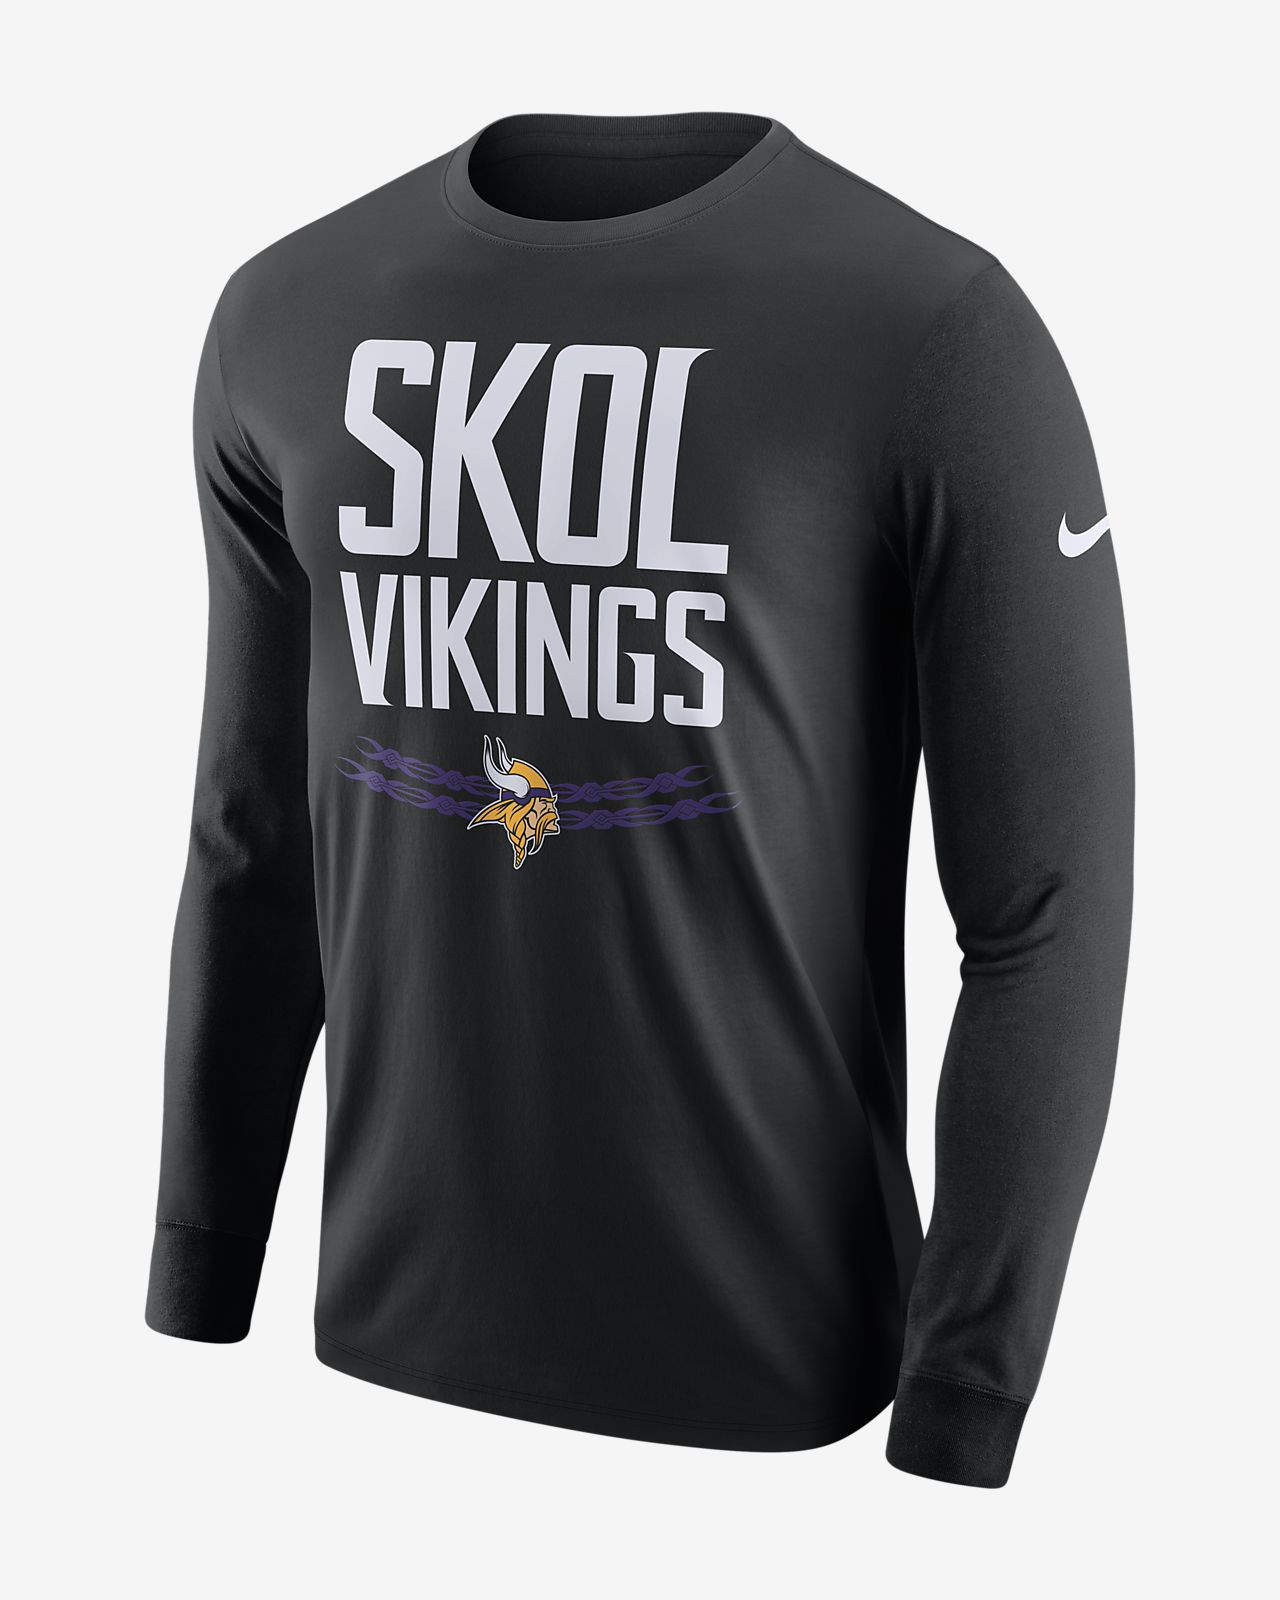 110971b4e510 Nike Dri-FIT (NFL Vikings) Men s Long-Sleeve T-Shirt. Nike.com